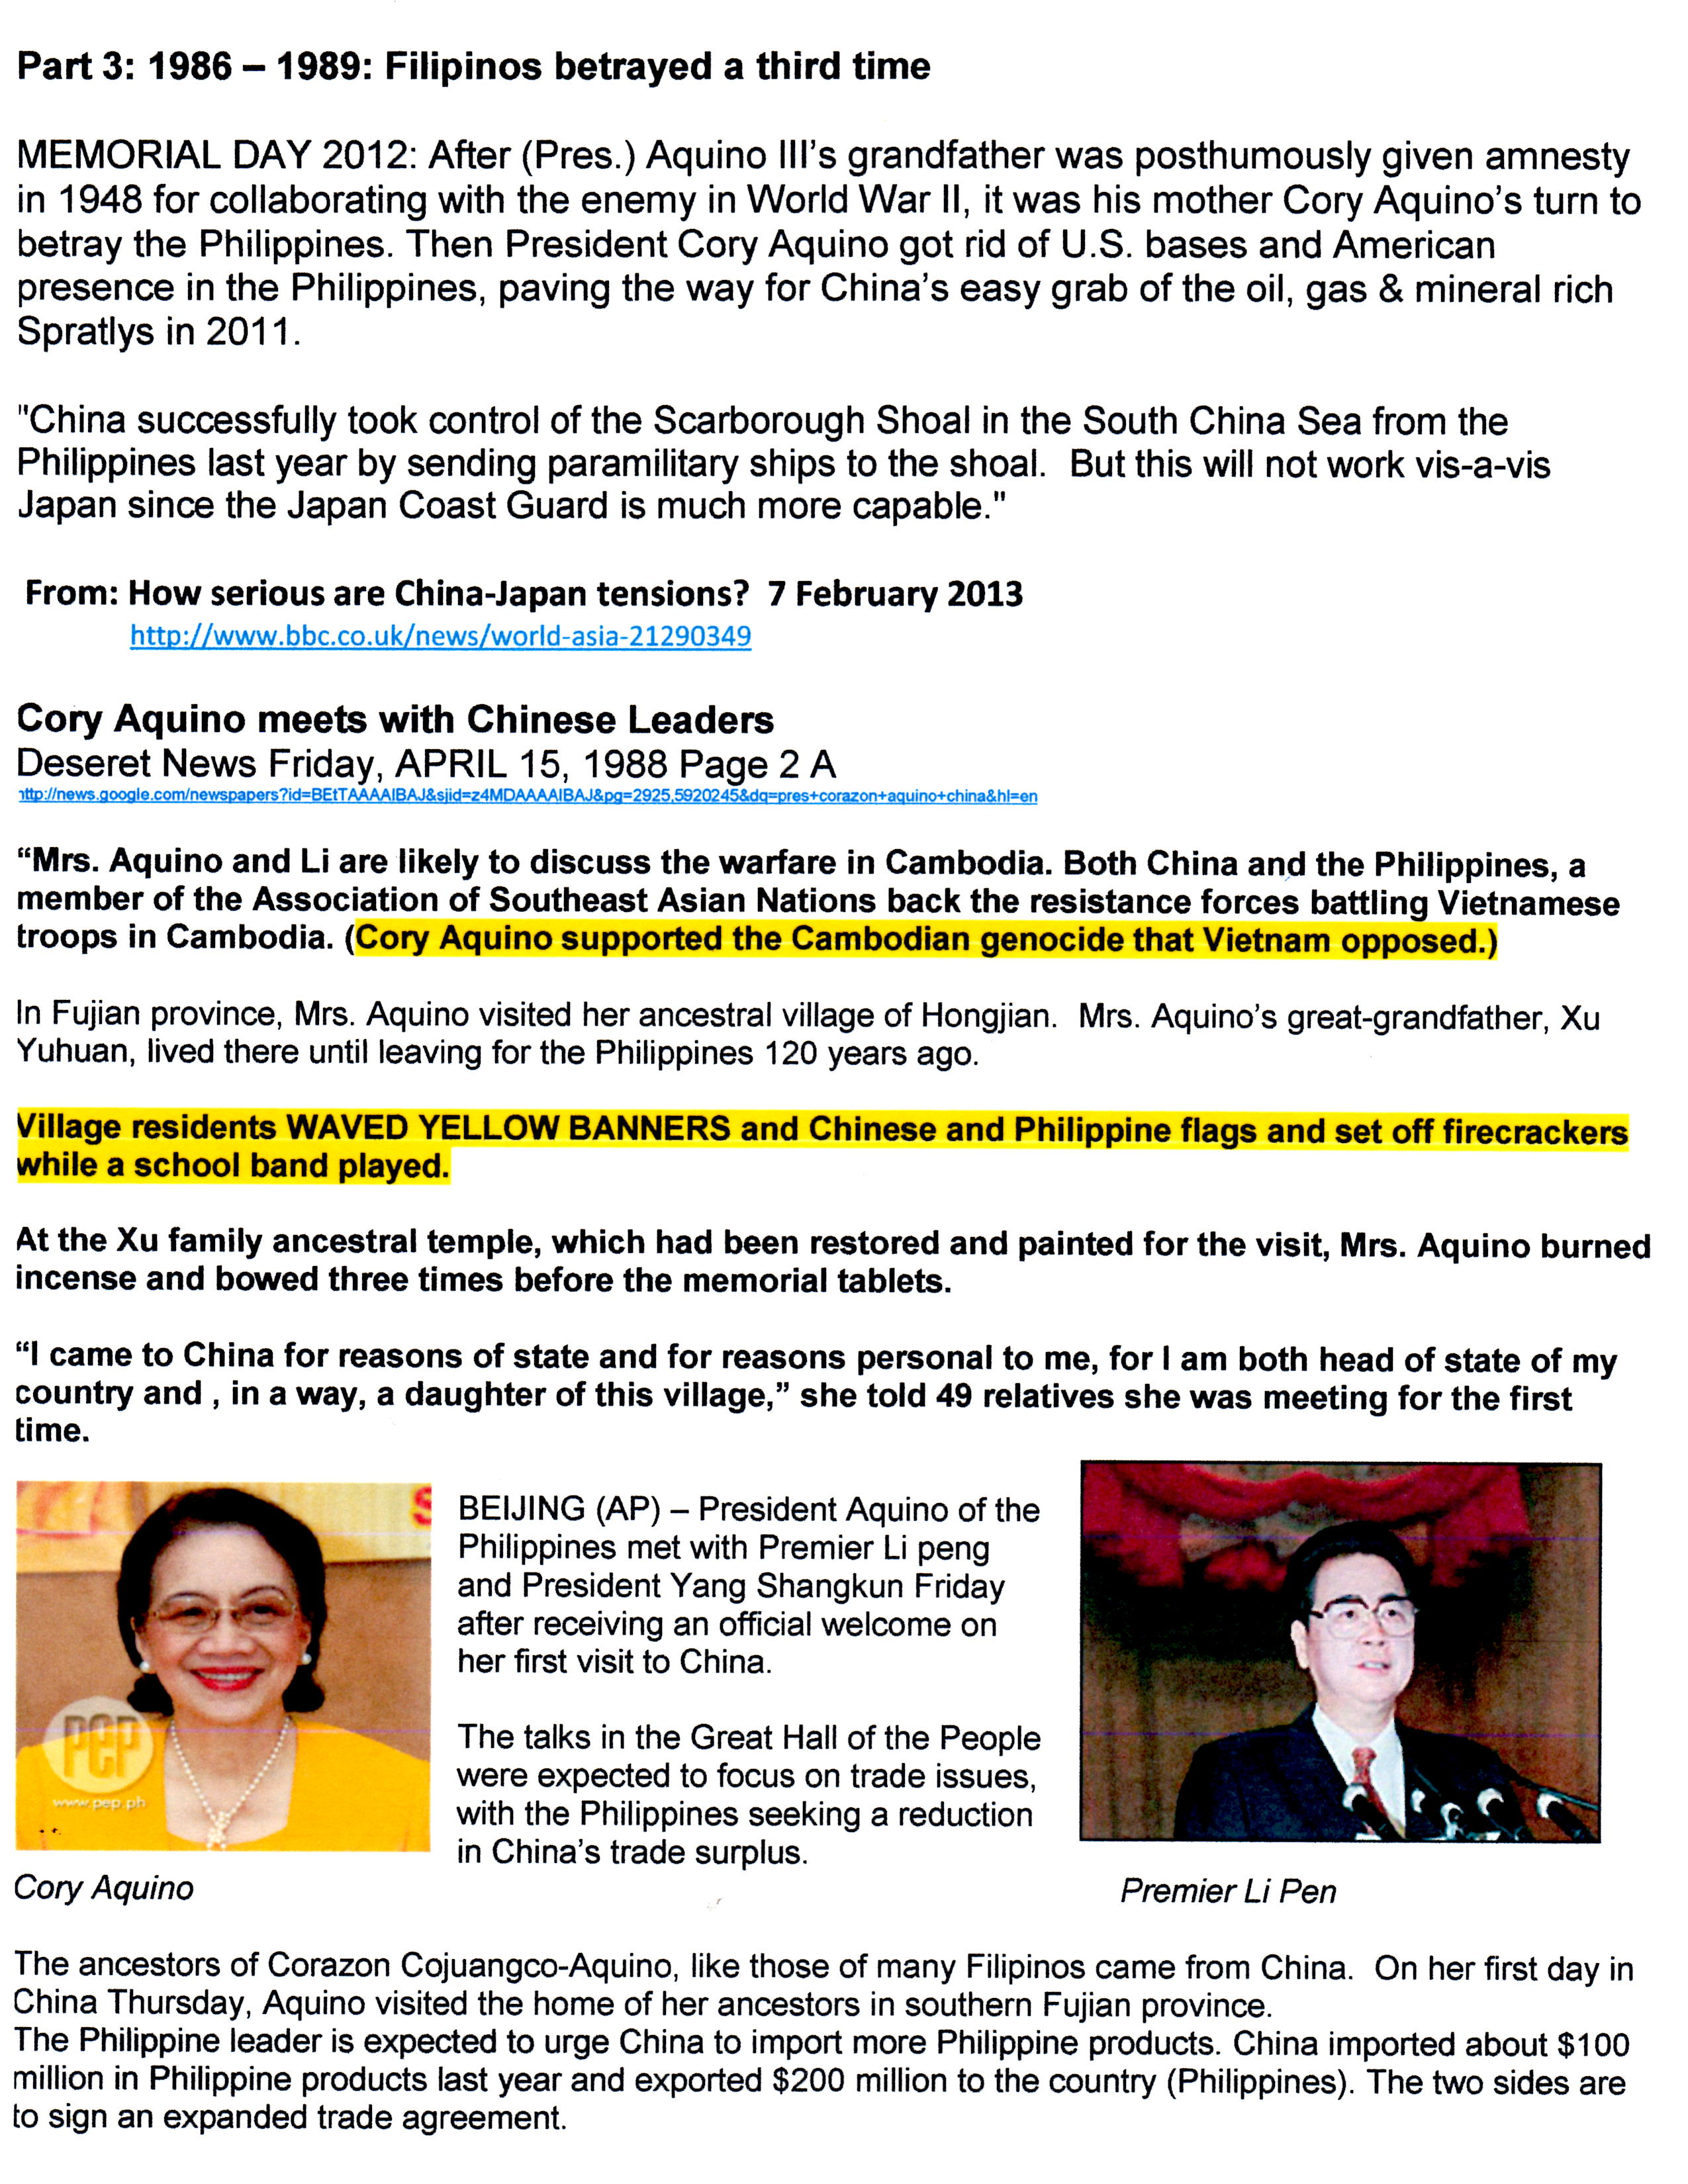 Blog Cory Aquino meets with Chinese Leaders 04-15-88